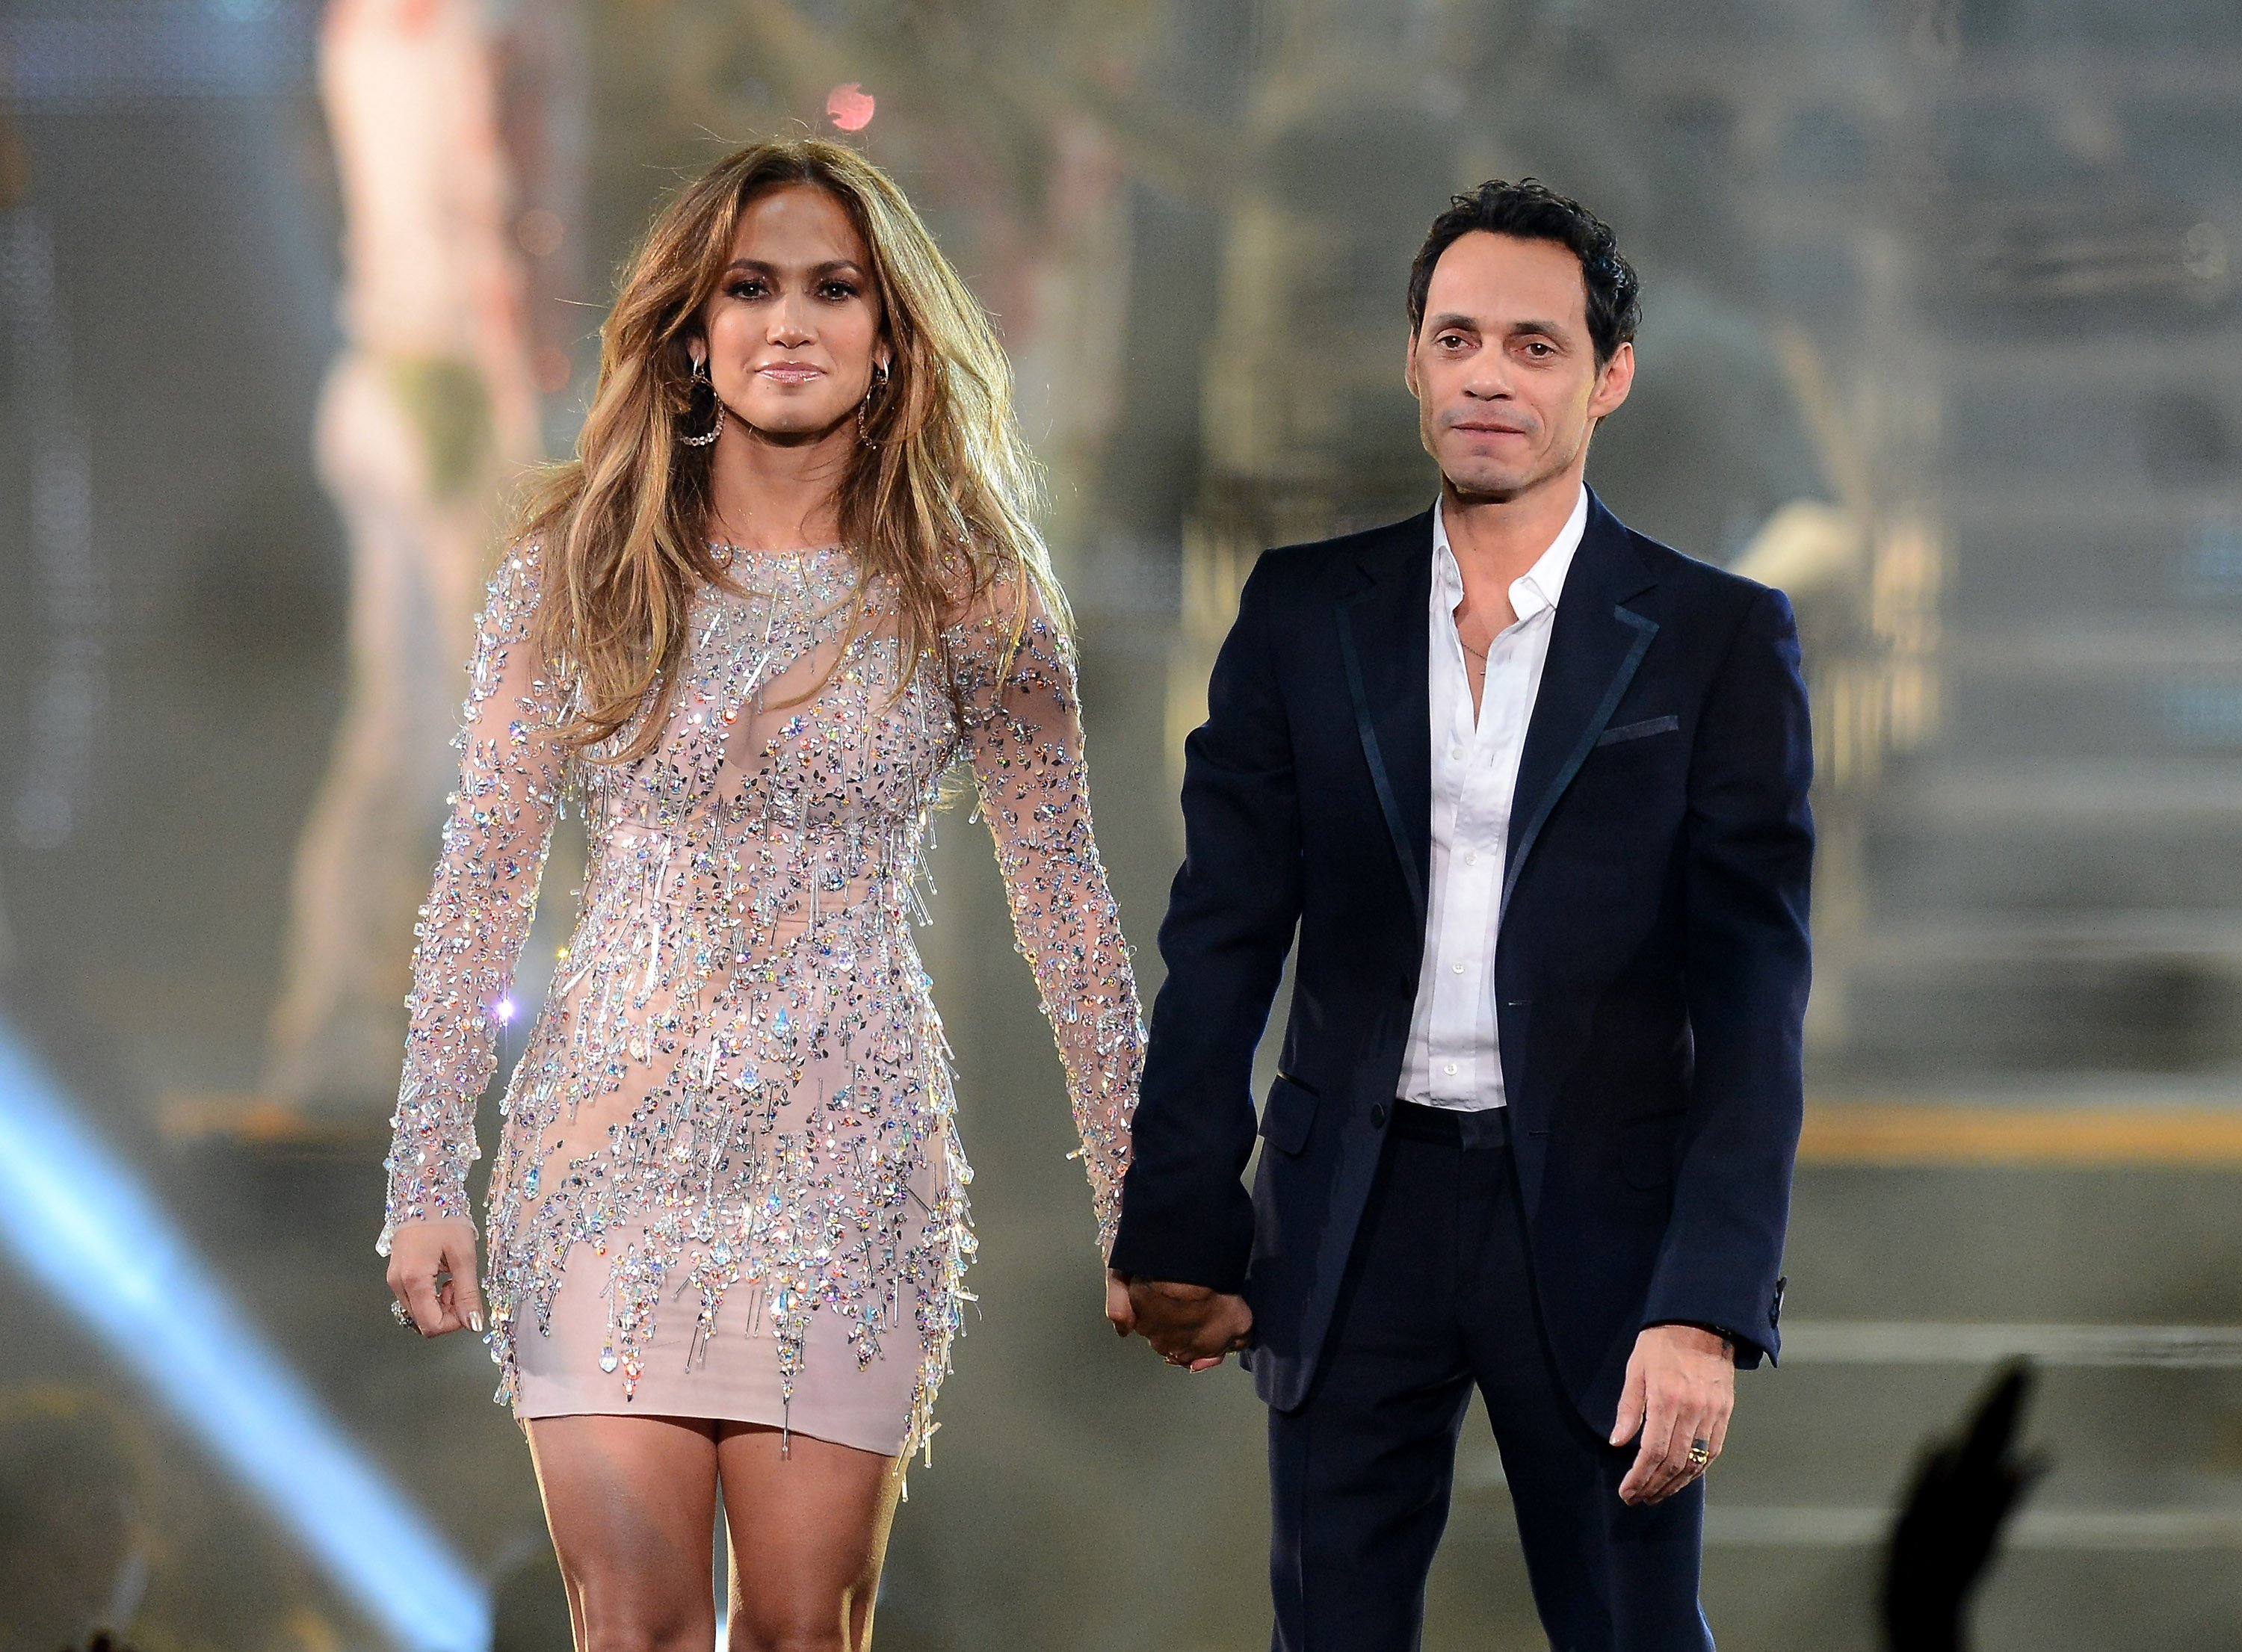 Jennifer Lopez (L) and singer Marc Anthony appear during the finale of the Q'Viva! The Chosen Live show at the Mandalay Bay Events Center on May 26, 2012, in Las Vegas, Nevada. | Source: Getty Images.